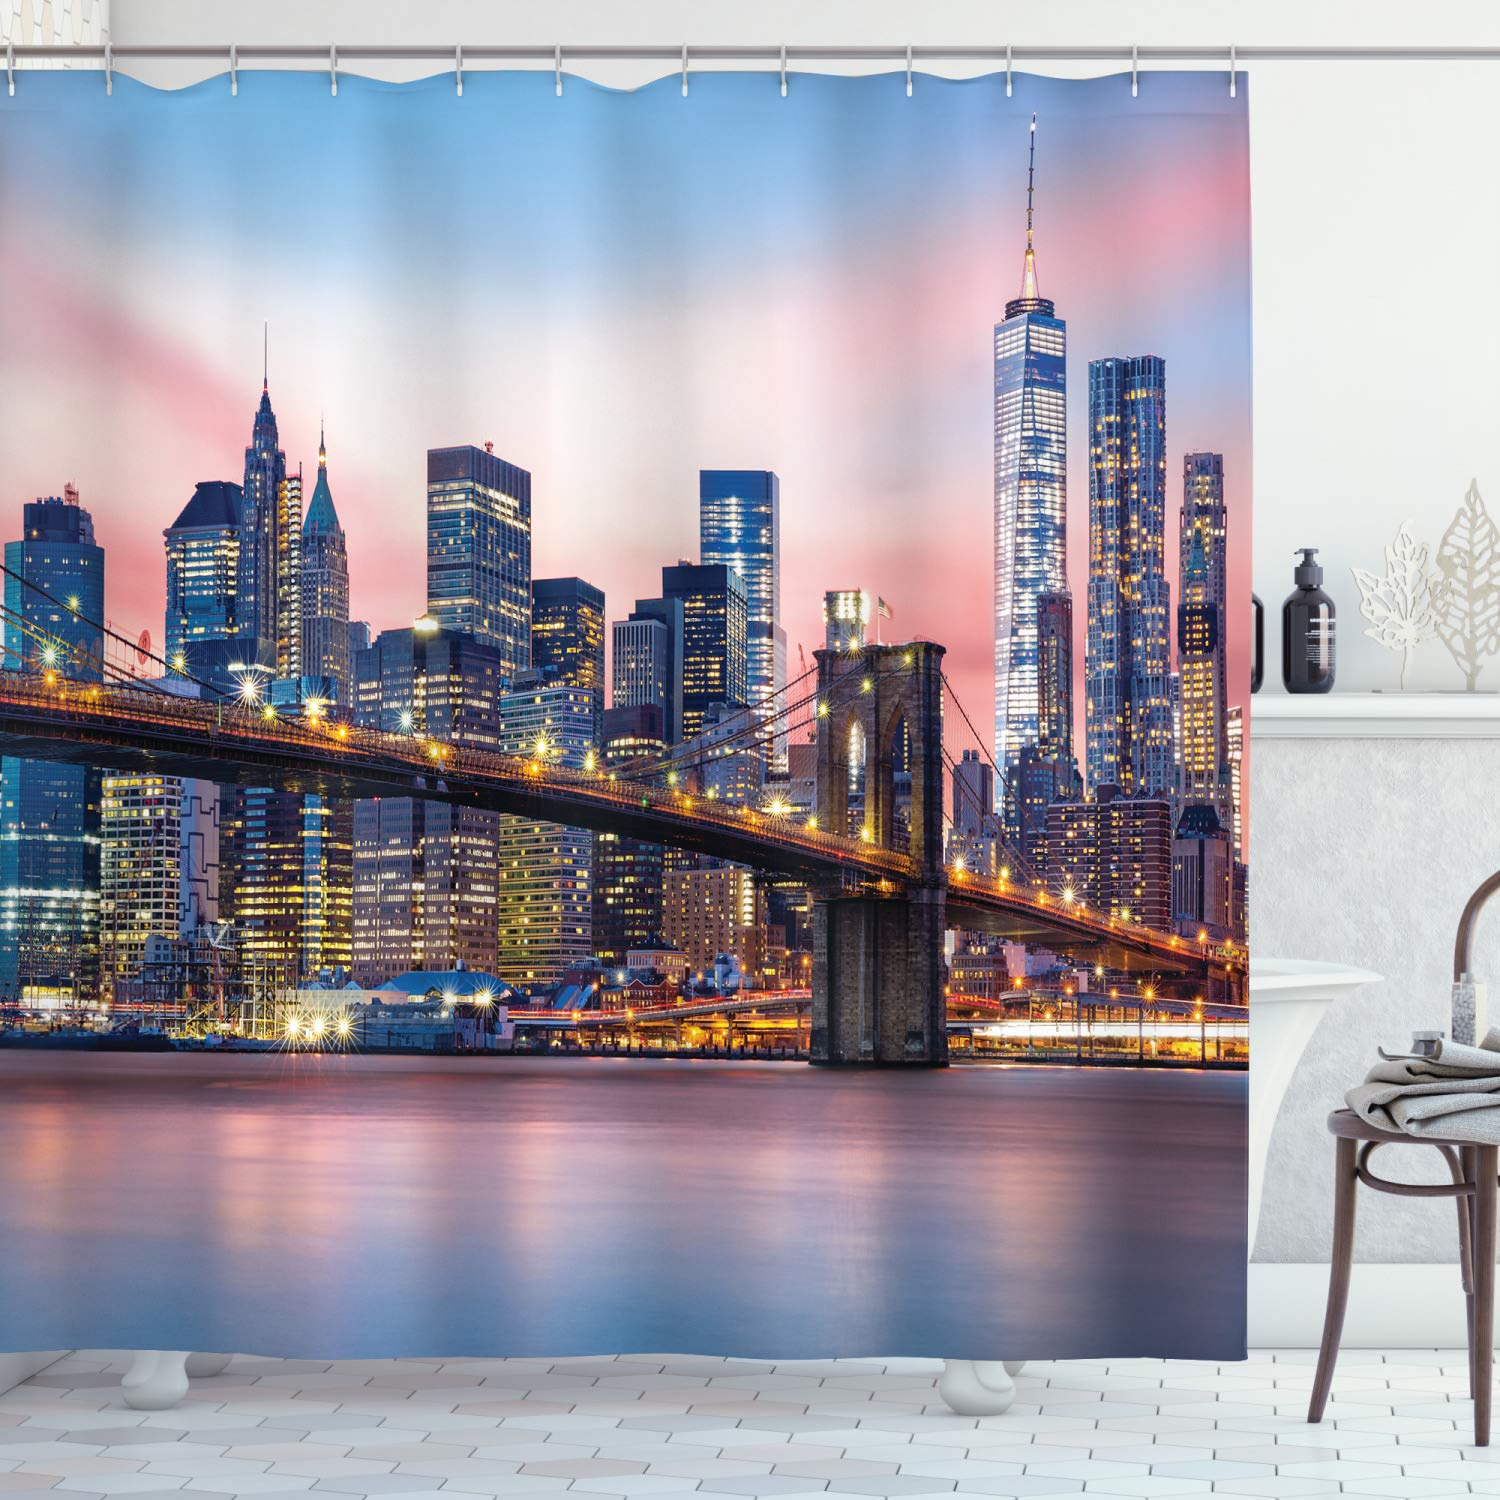 Ambesonne New York Shower Curtain, Brooklyn Bridge and Lower Manhattan Skyline Under Pink Sunrise Long Exposure Art Image, Fabric Bathroom Decor Set with Hooks, 84 Inches Extra Long, Blue Pink